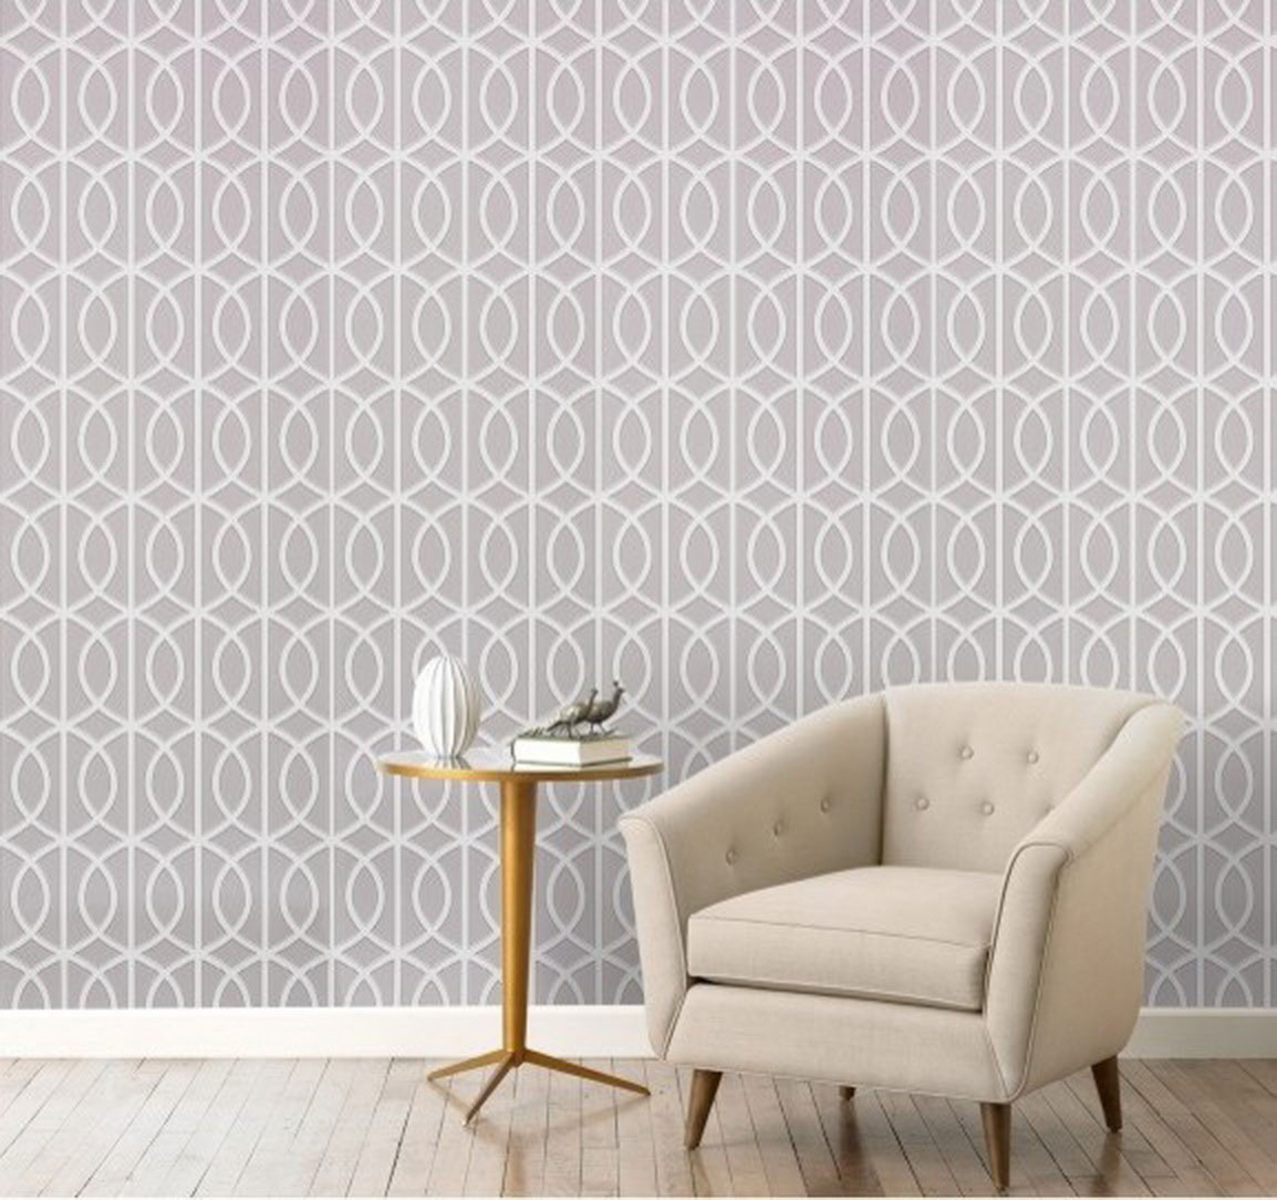 Wallpapers In Home Interiors: Wallpaper Dealers In Chennai